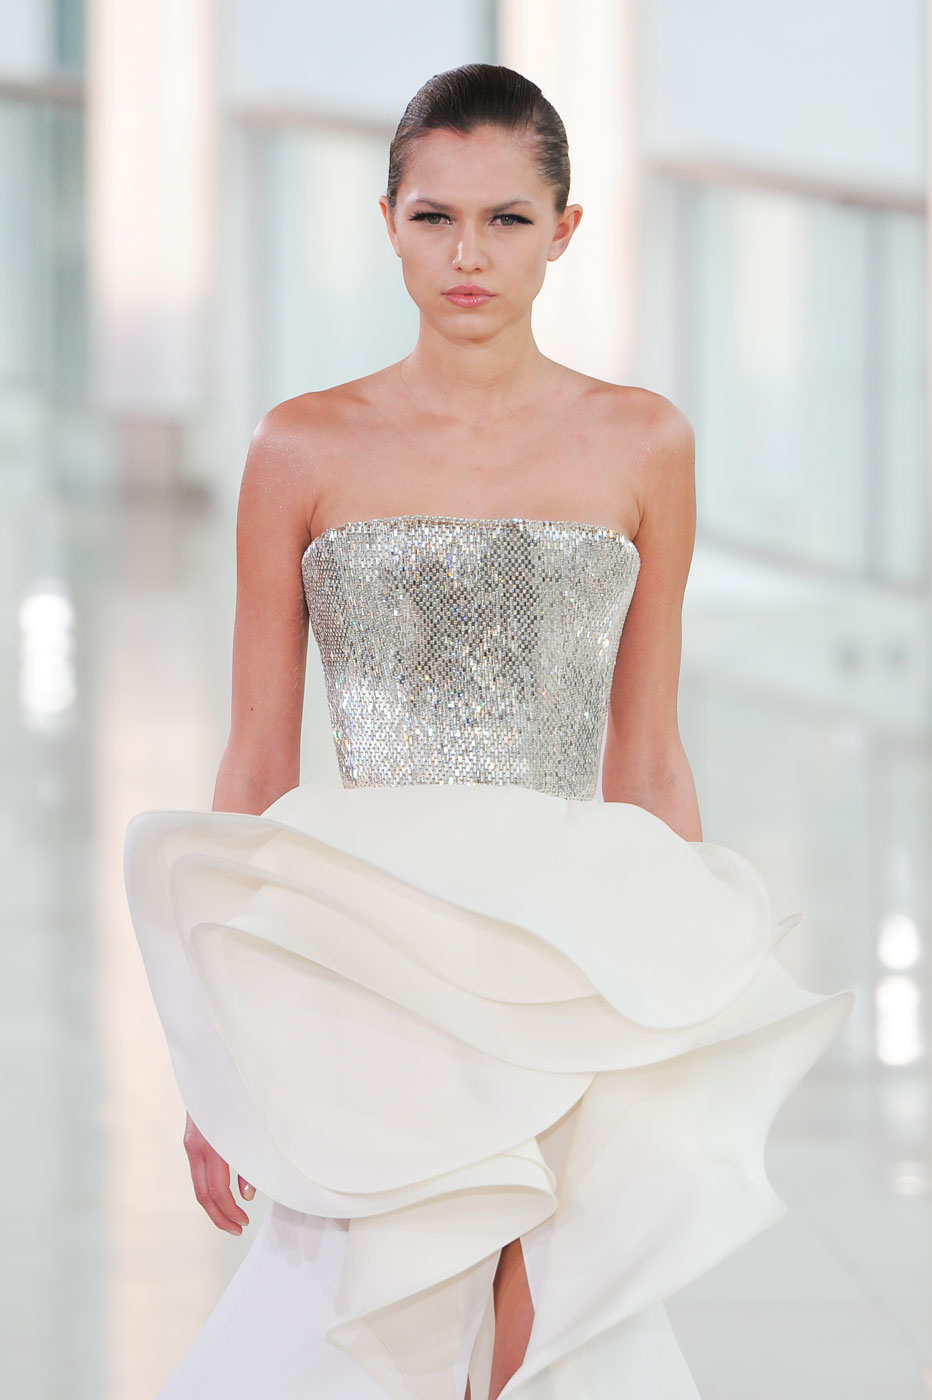 stephane-rolland-fashion-runway-show-haute-couture-paris-spring-2015-the-impression-26